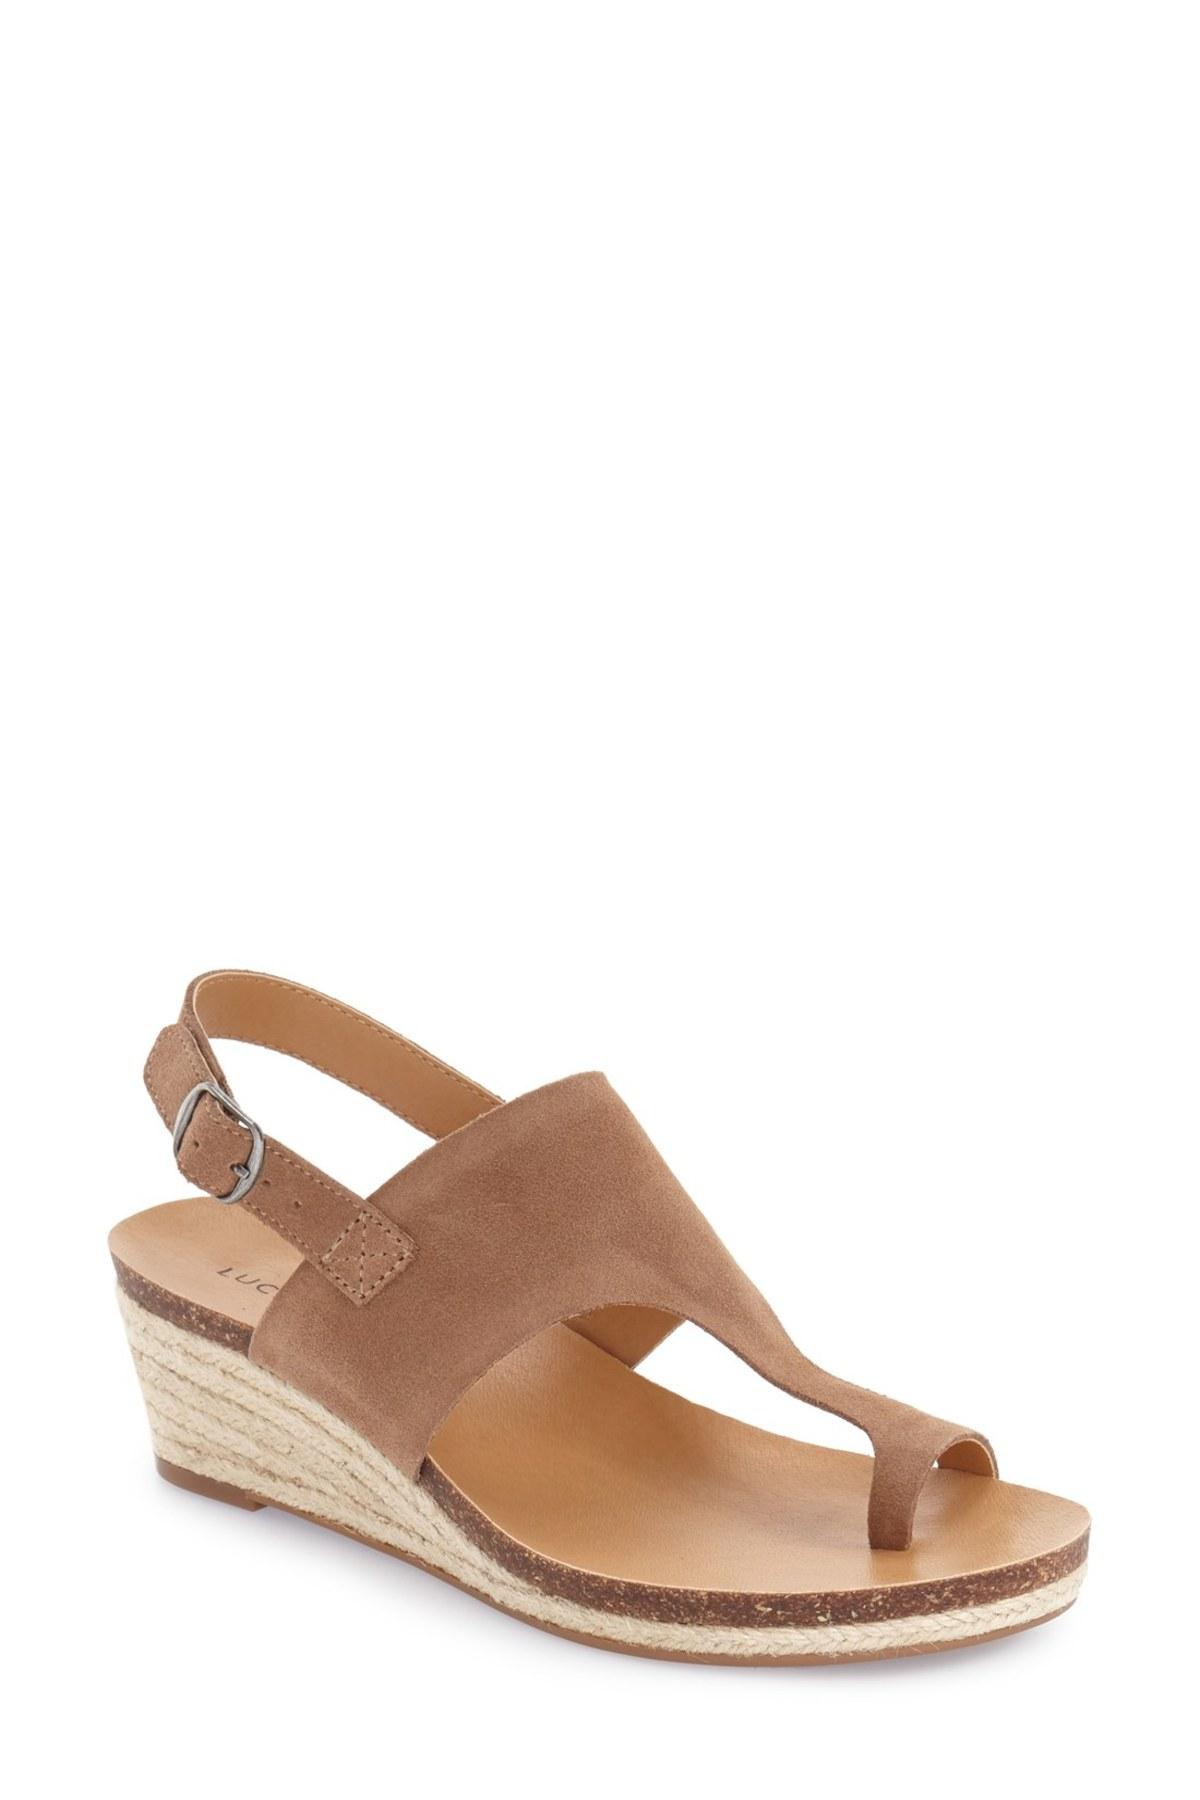 Lucky Brand Janessa Espadrille Wedge Sandal In Brown Lyst